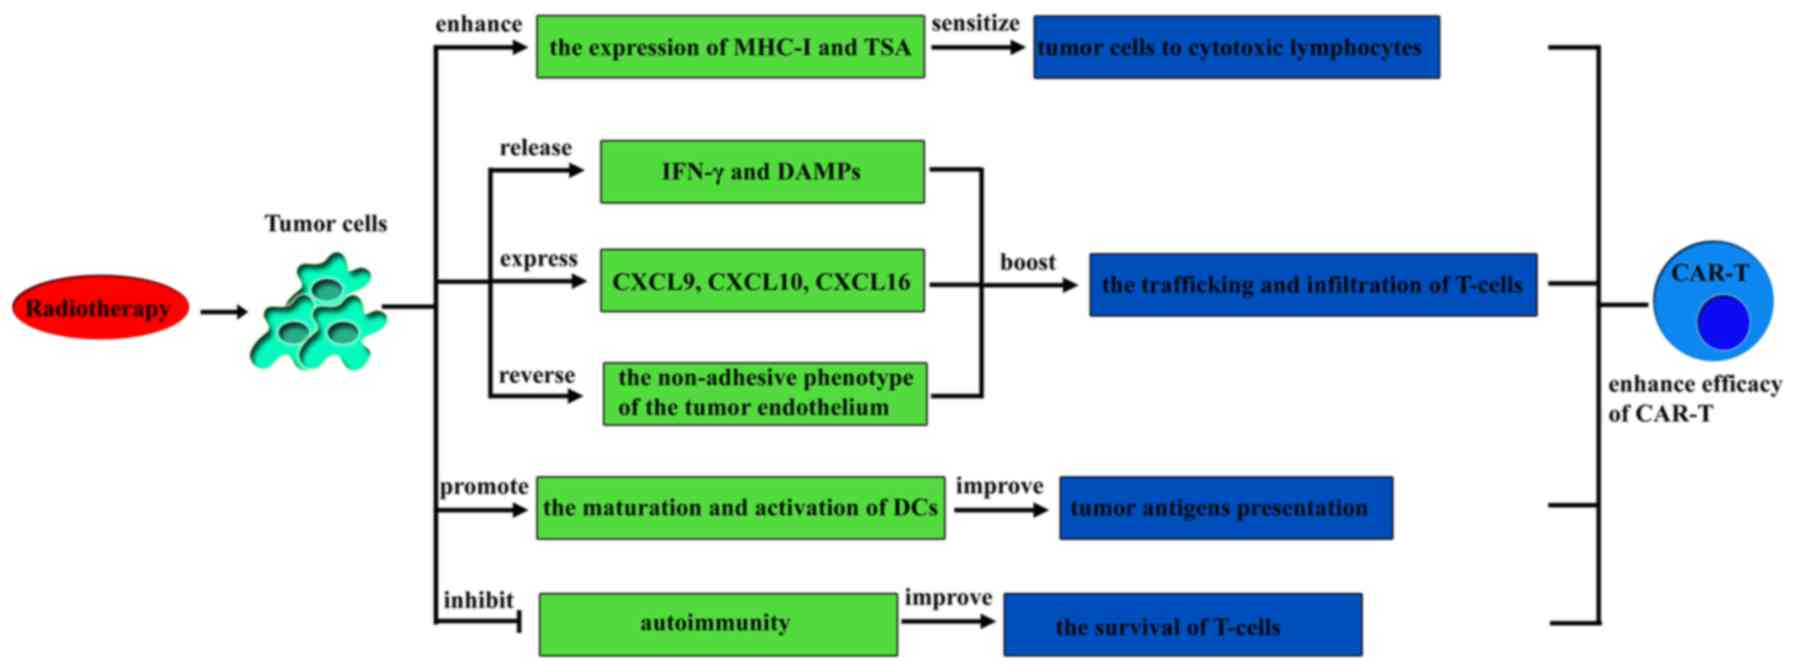 Combination Therapy A Feasibility Strategy For Car T Cell Therapy In The Treatment Of Solid Tumors Review